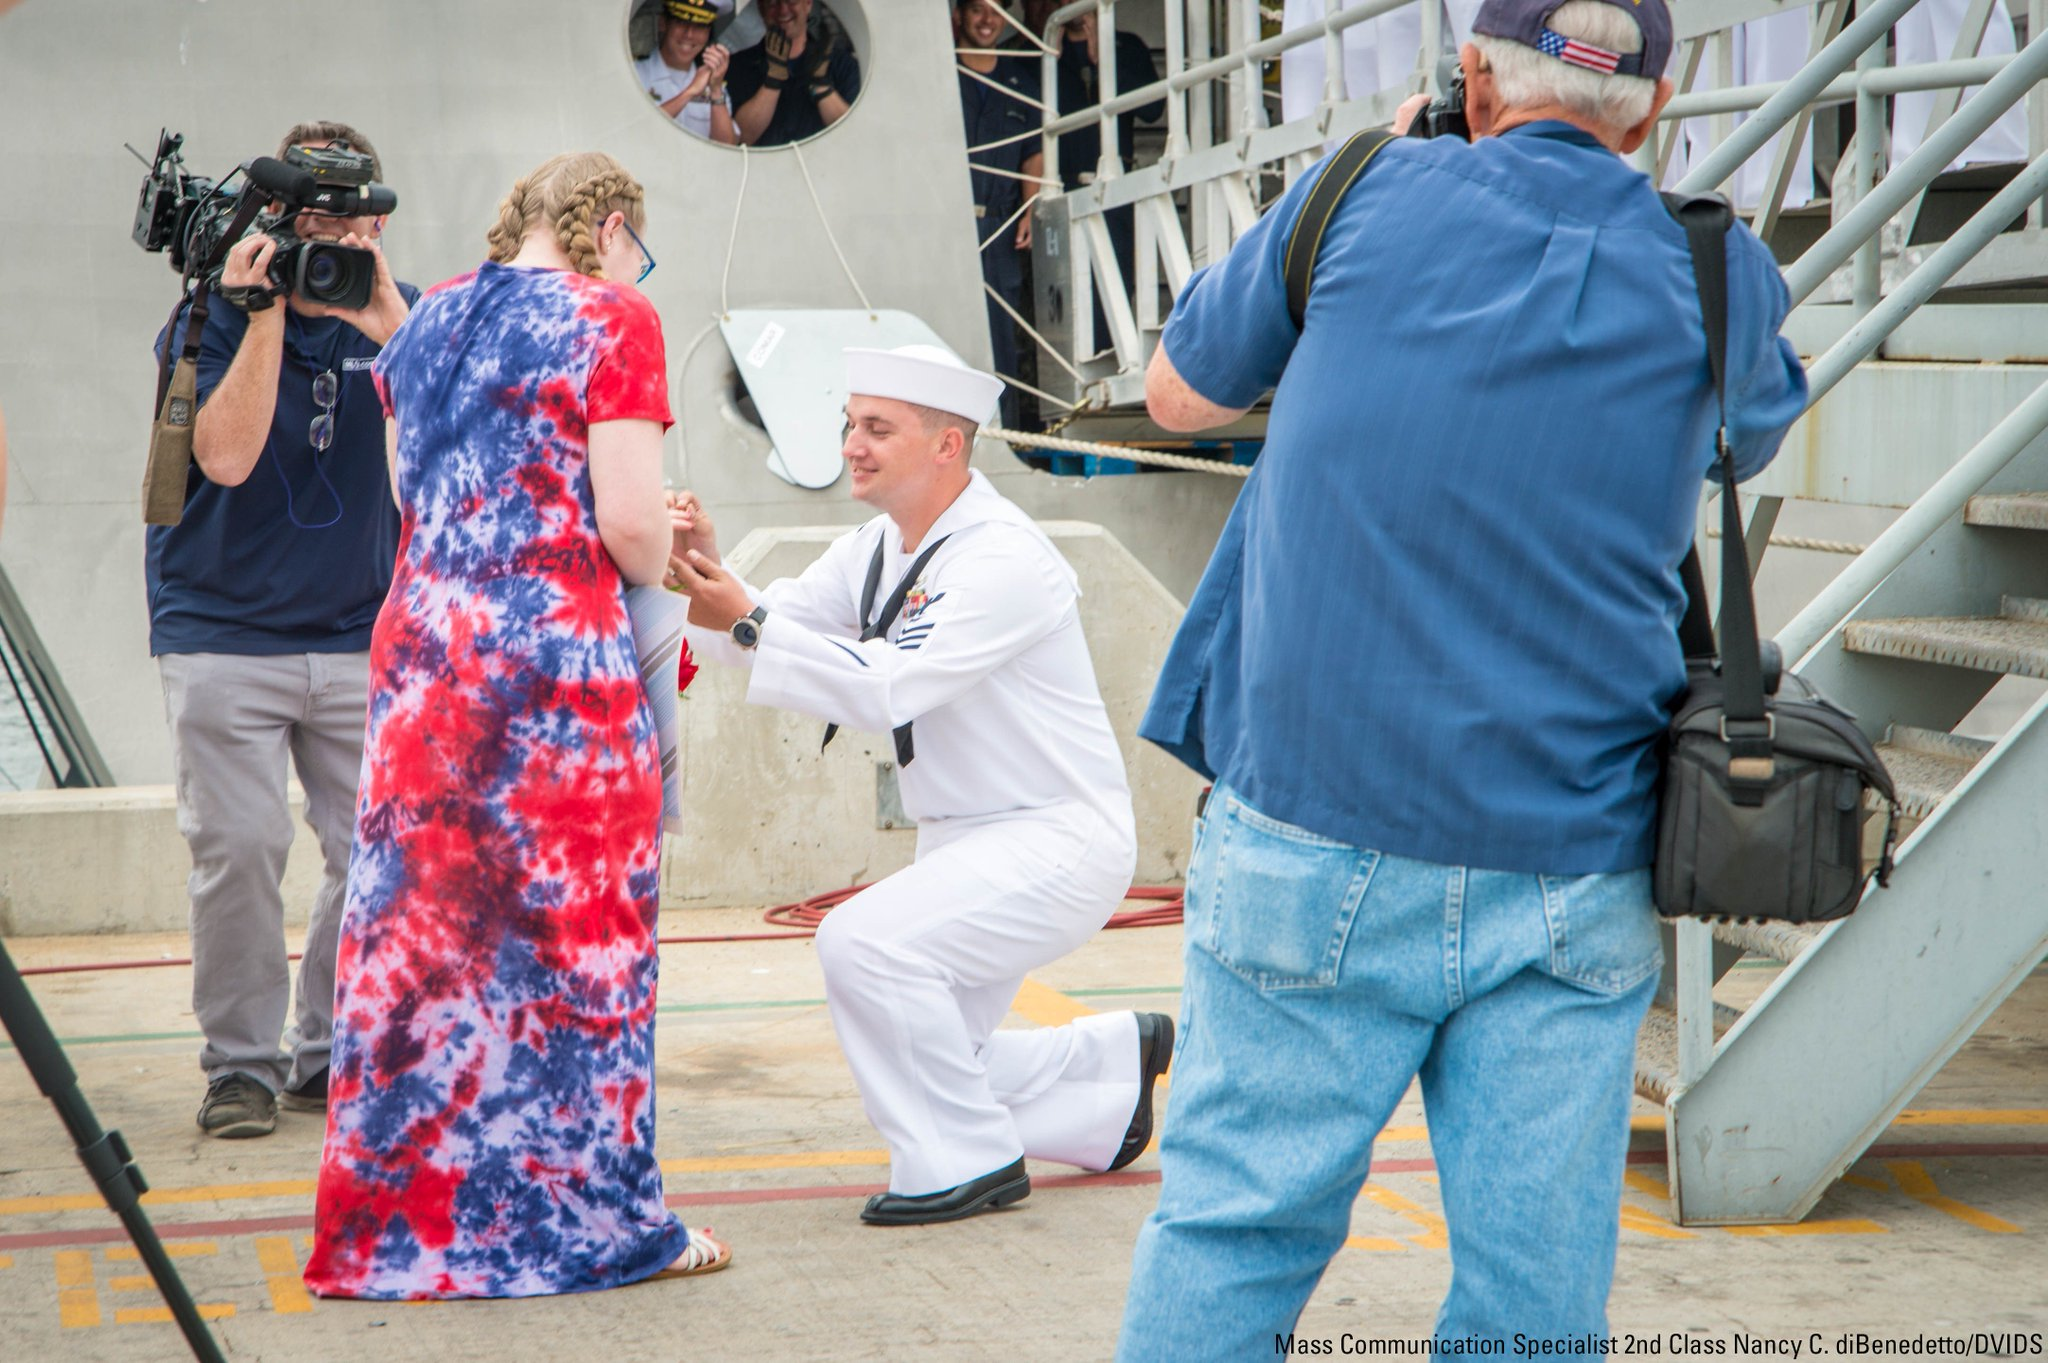 Mineman 1st Class Donavan Page proposes to his girlfriend during a homecoming celebration in San Diego on June 19. https://t.co/fzuLRgY1dK